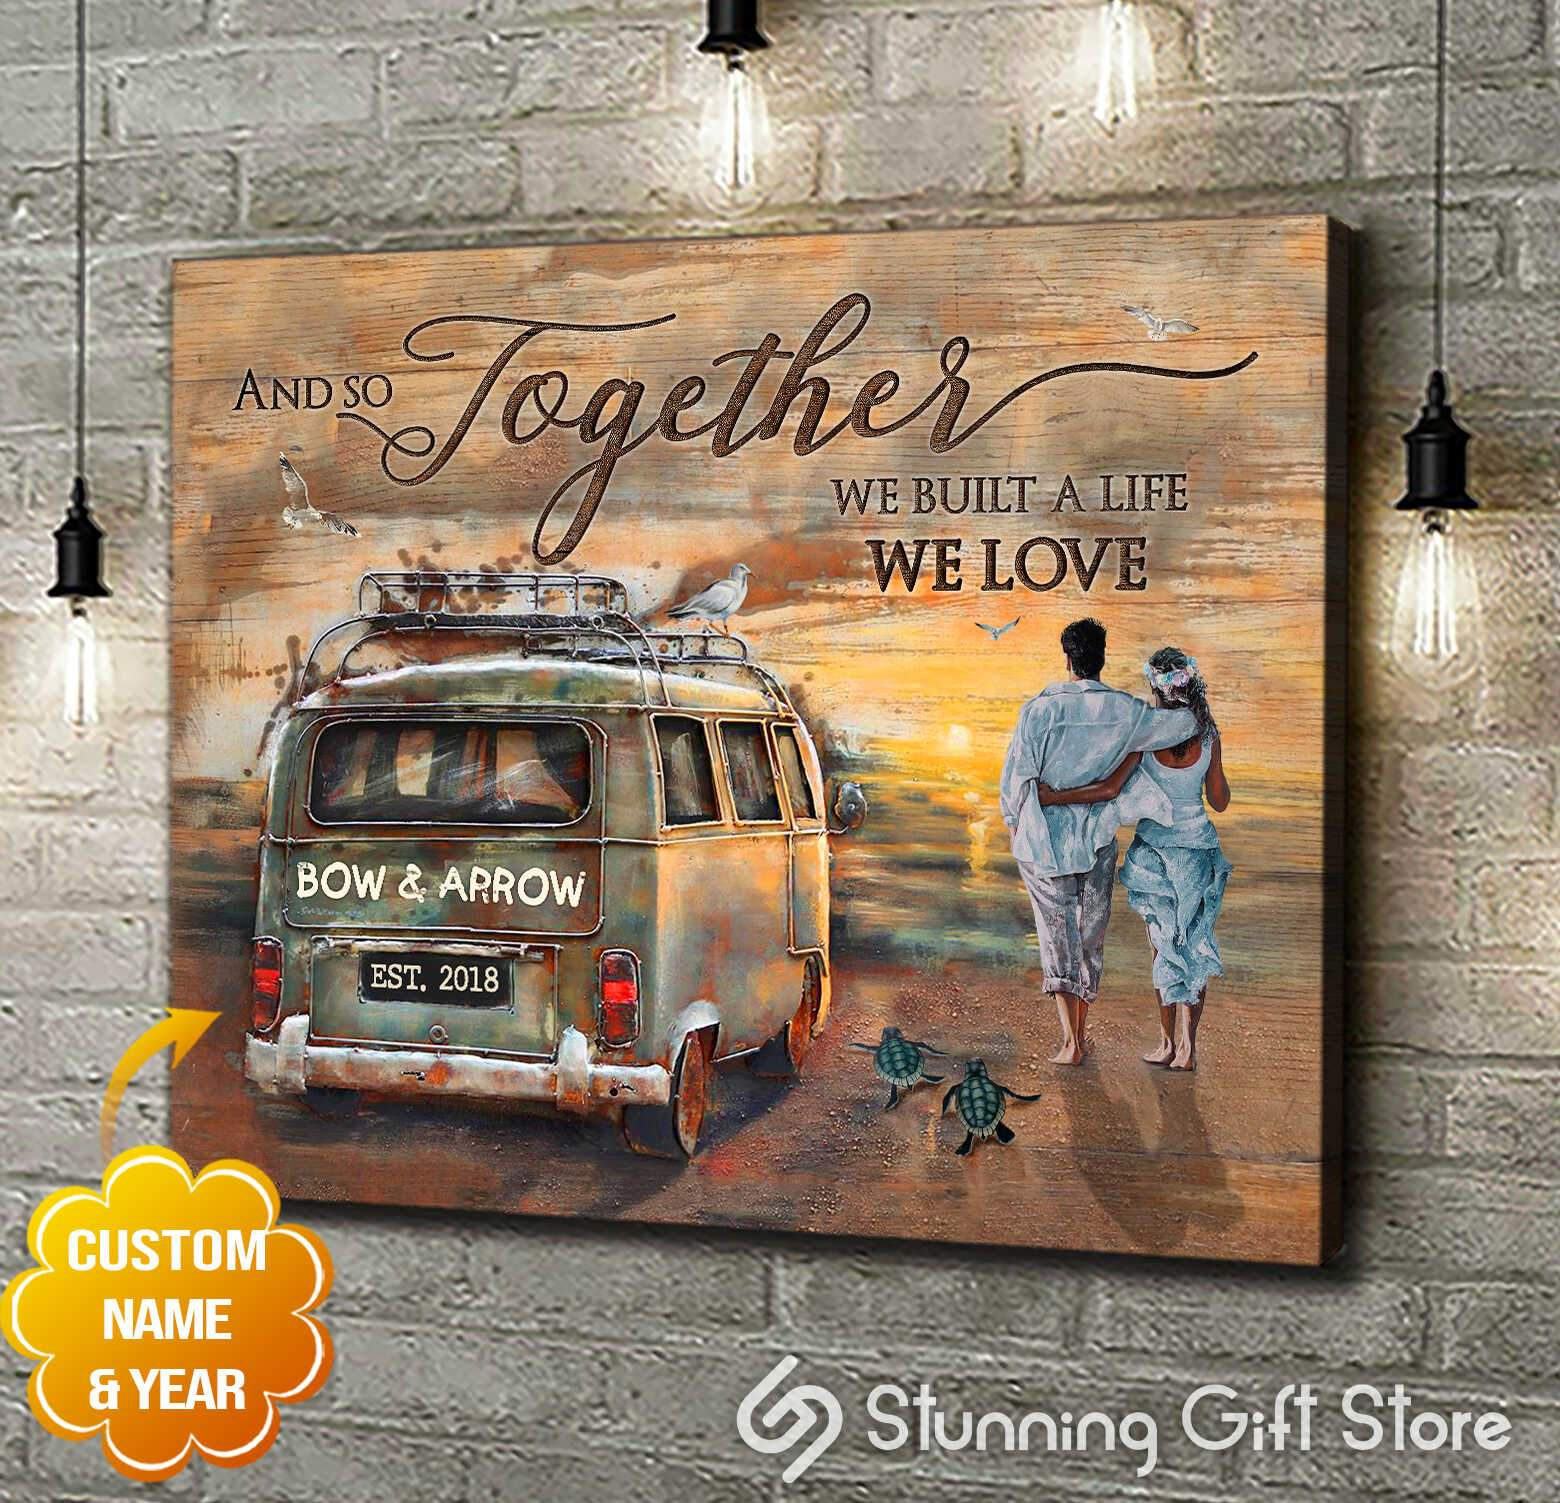 Together we built a life we love   Canvas Print   Stunning Gift Store